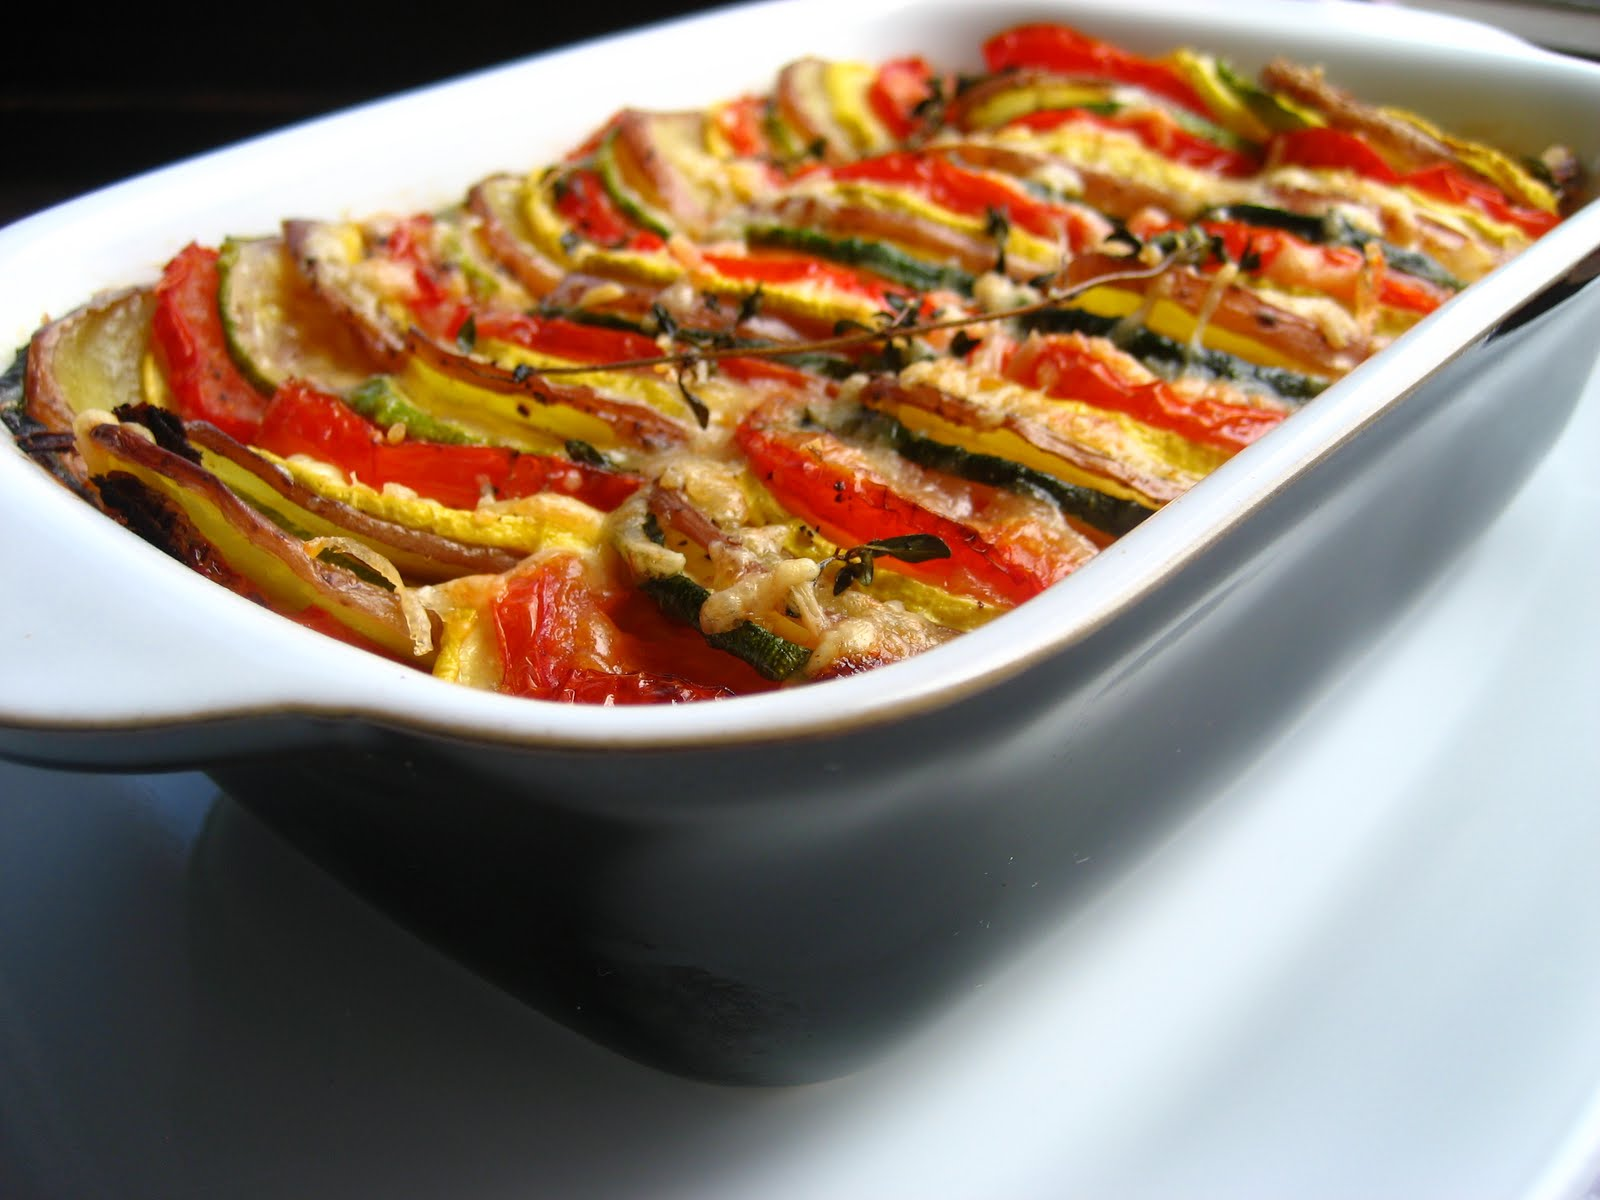 ... Cooking In Montana: Denby Product Review and Vegetable Tian Recipe